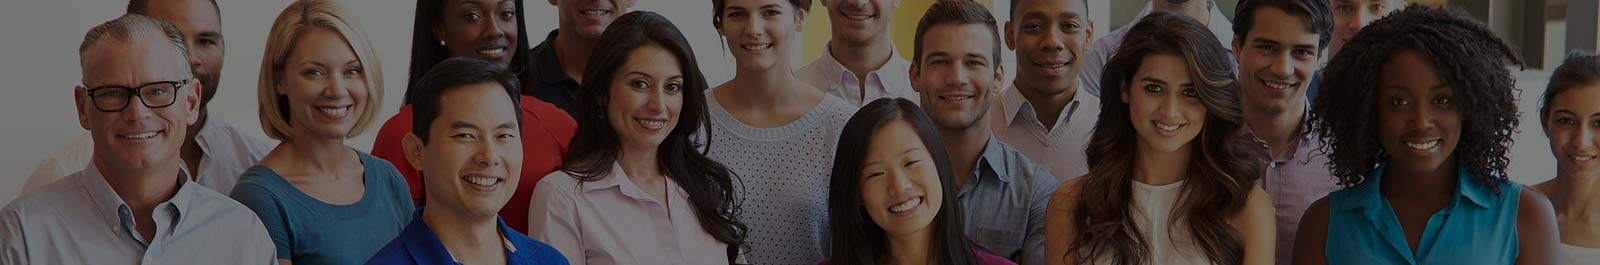 Header image - office with diverse group of smiling employees